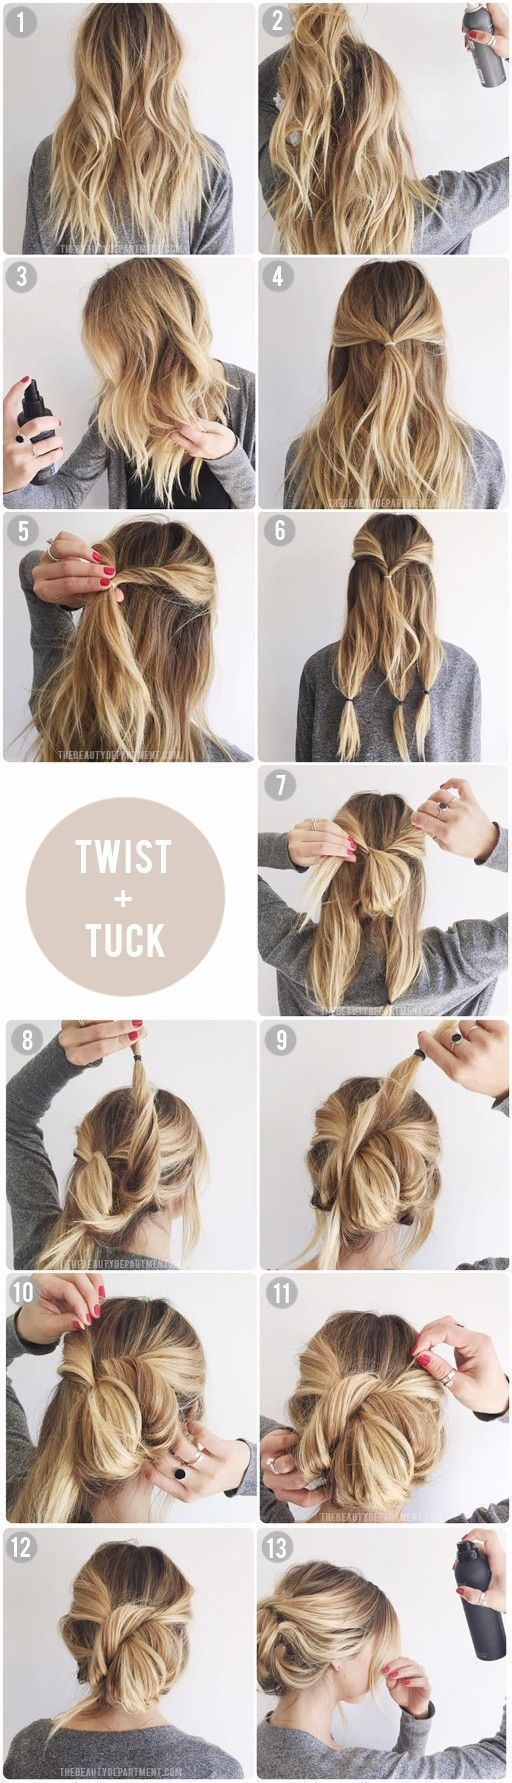 7 Ways To Style Your Hair For Every Summer Occasion - Trend To Wear